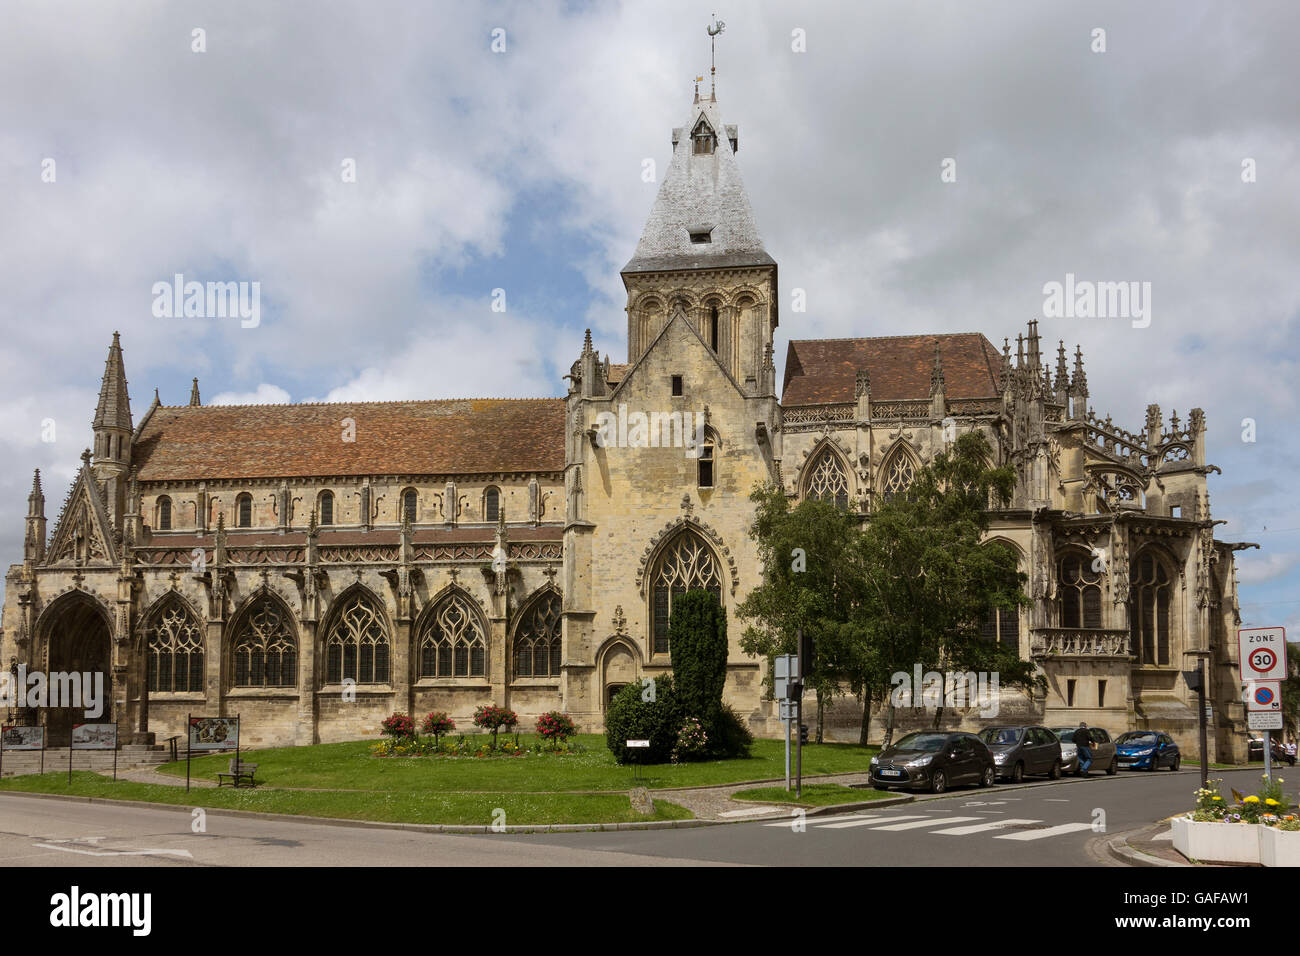 France, Normandy, Falaise, St.Gervaise church Stock Photo